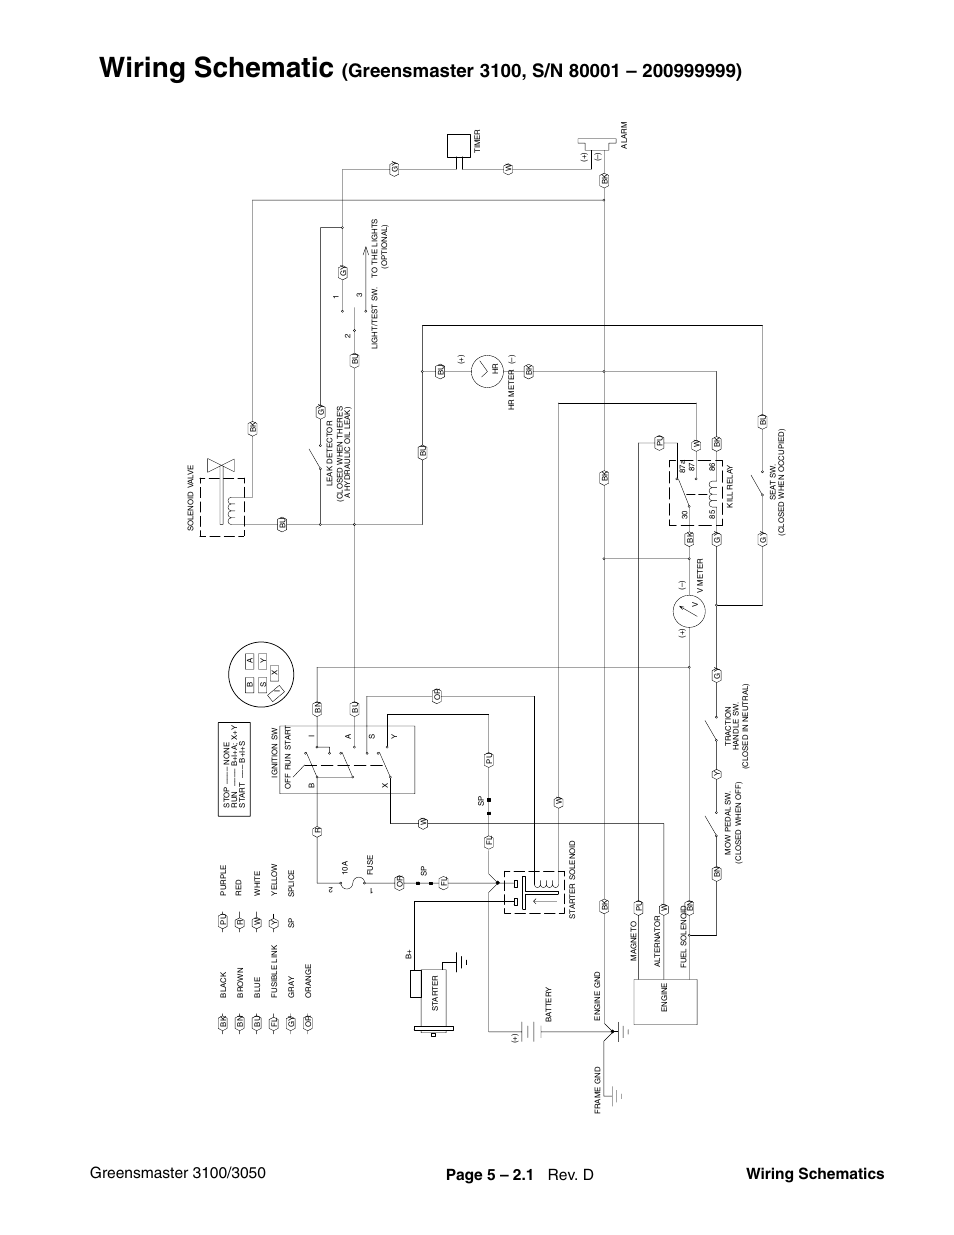 Wiring schematic | Toro GREENSMASTER 3100 User Manual | Page 103 / 234 |  Original modeManuals Directory